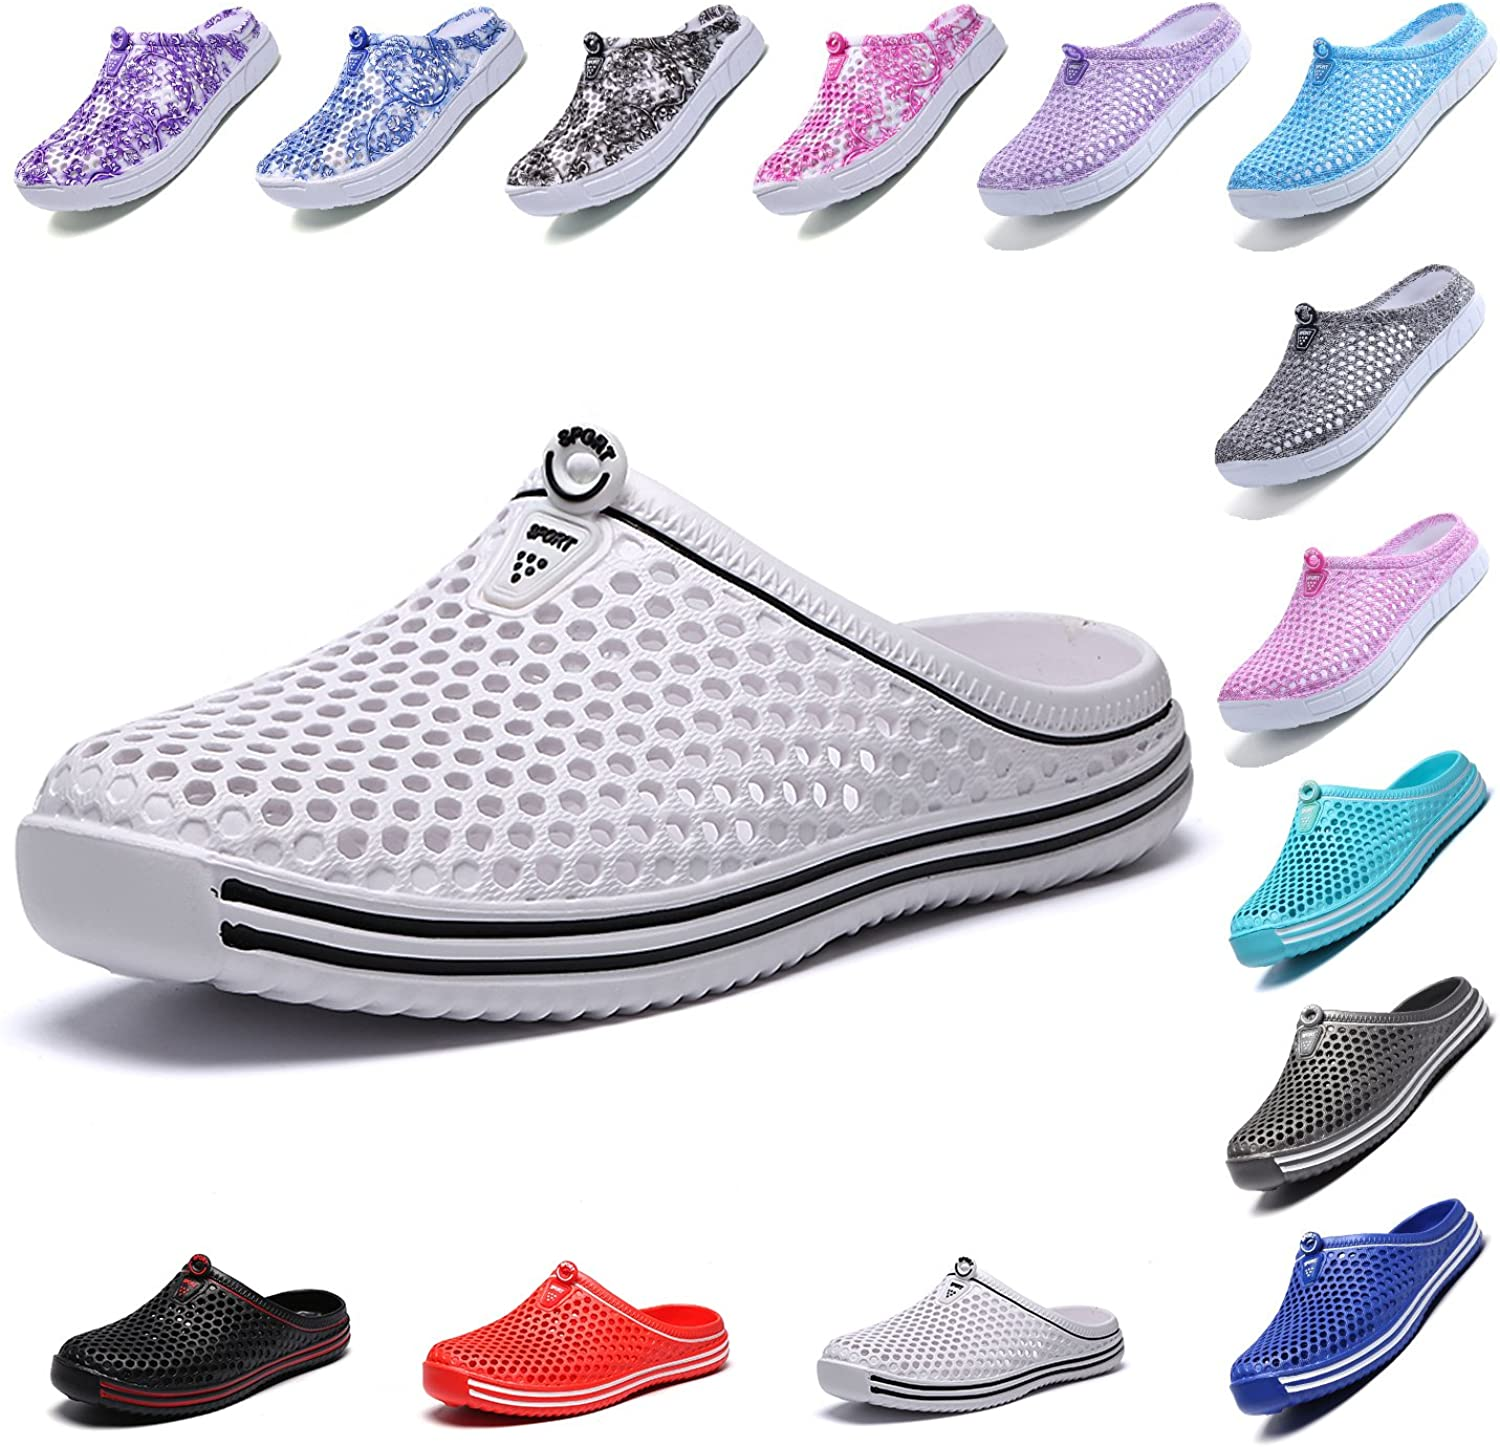 LIGHFOOT Garden Clog Shoes Beach 2021new shipping free Footwear Water Today's only Womens bash Summ